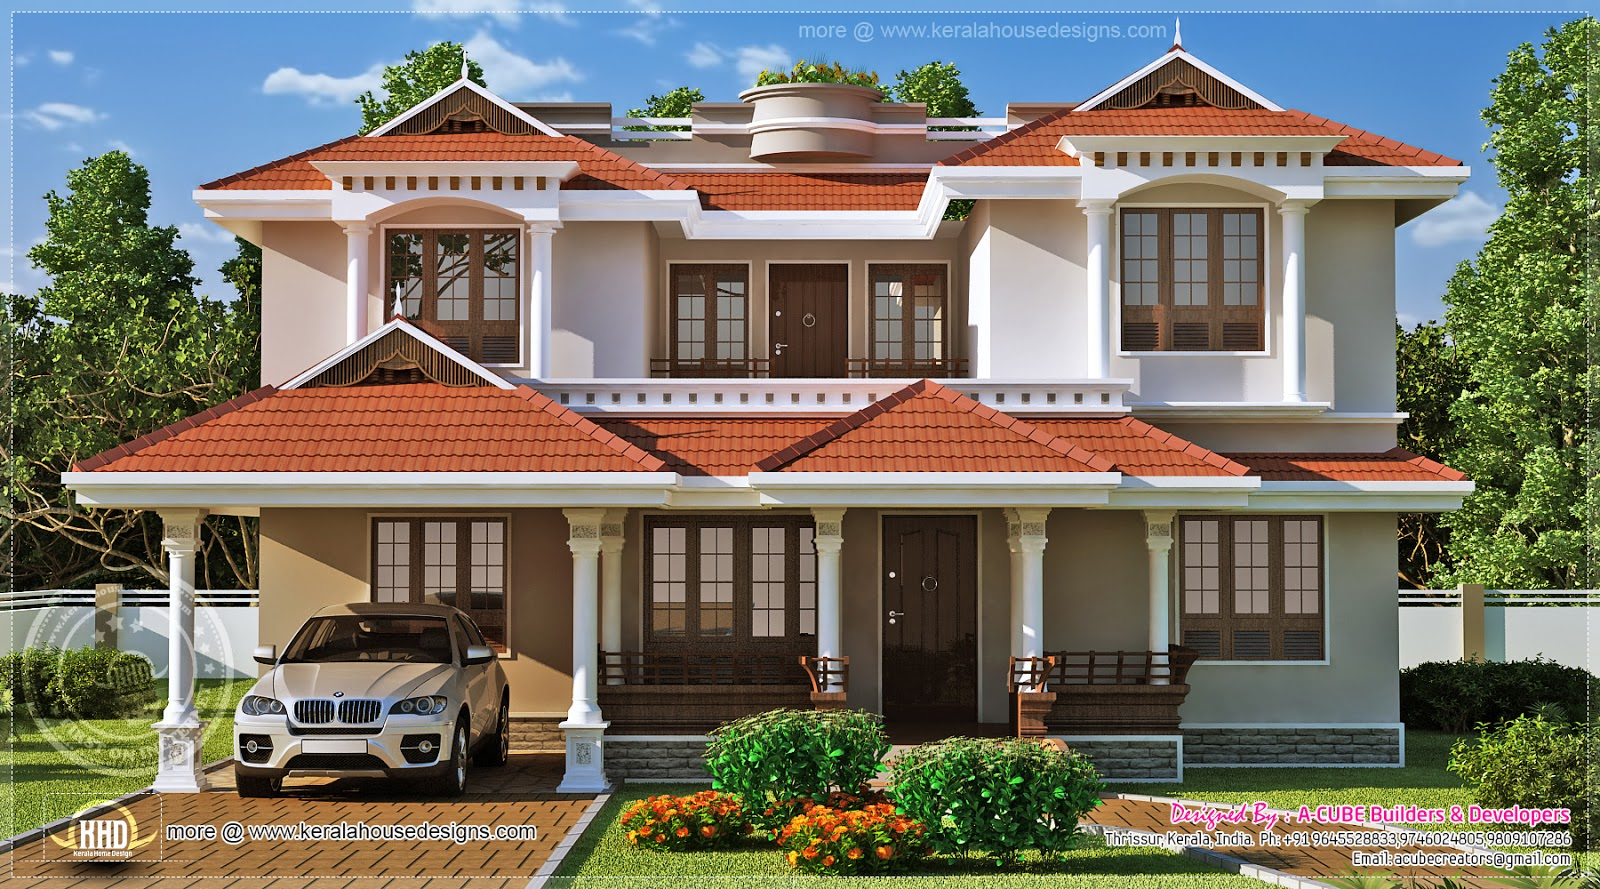 Traditional kerala model beautiful home exterior with car porch - Kerala exterior model homes ...